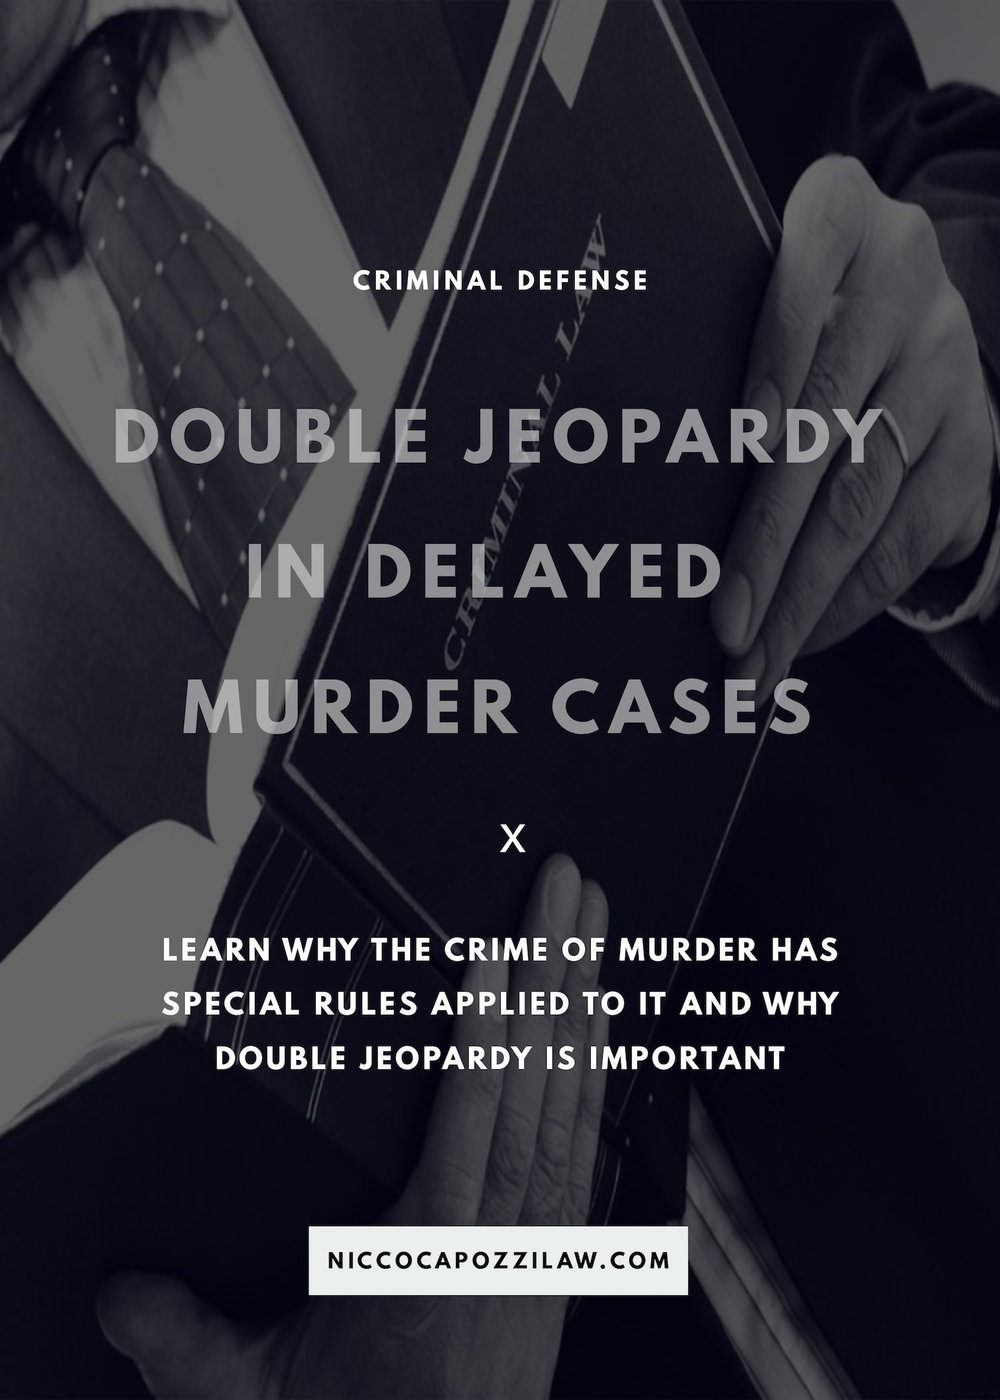 double jeopardy in delayed murder cases.jpg